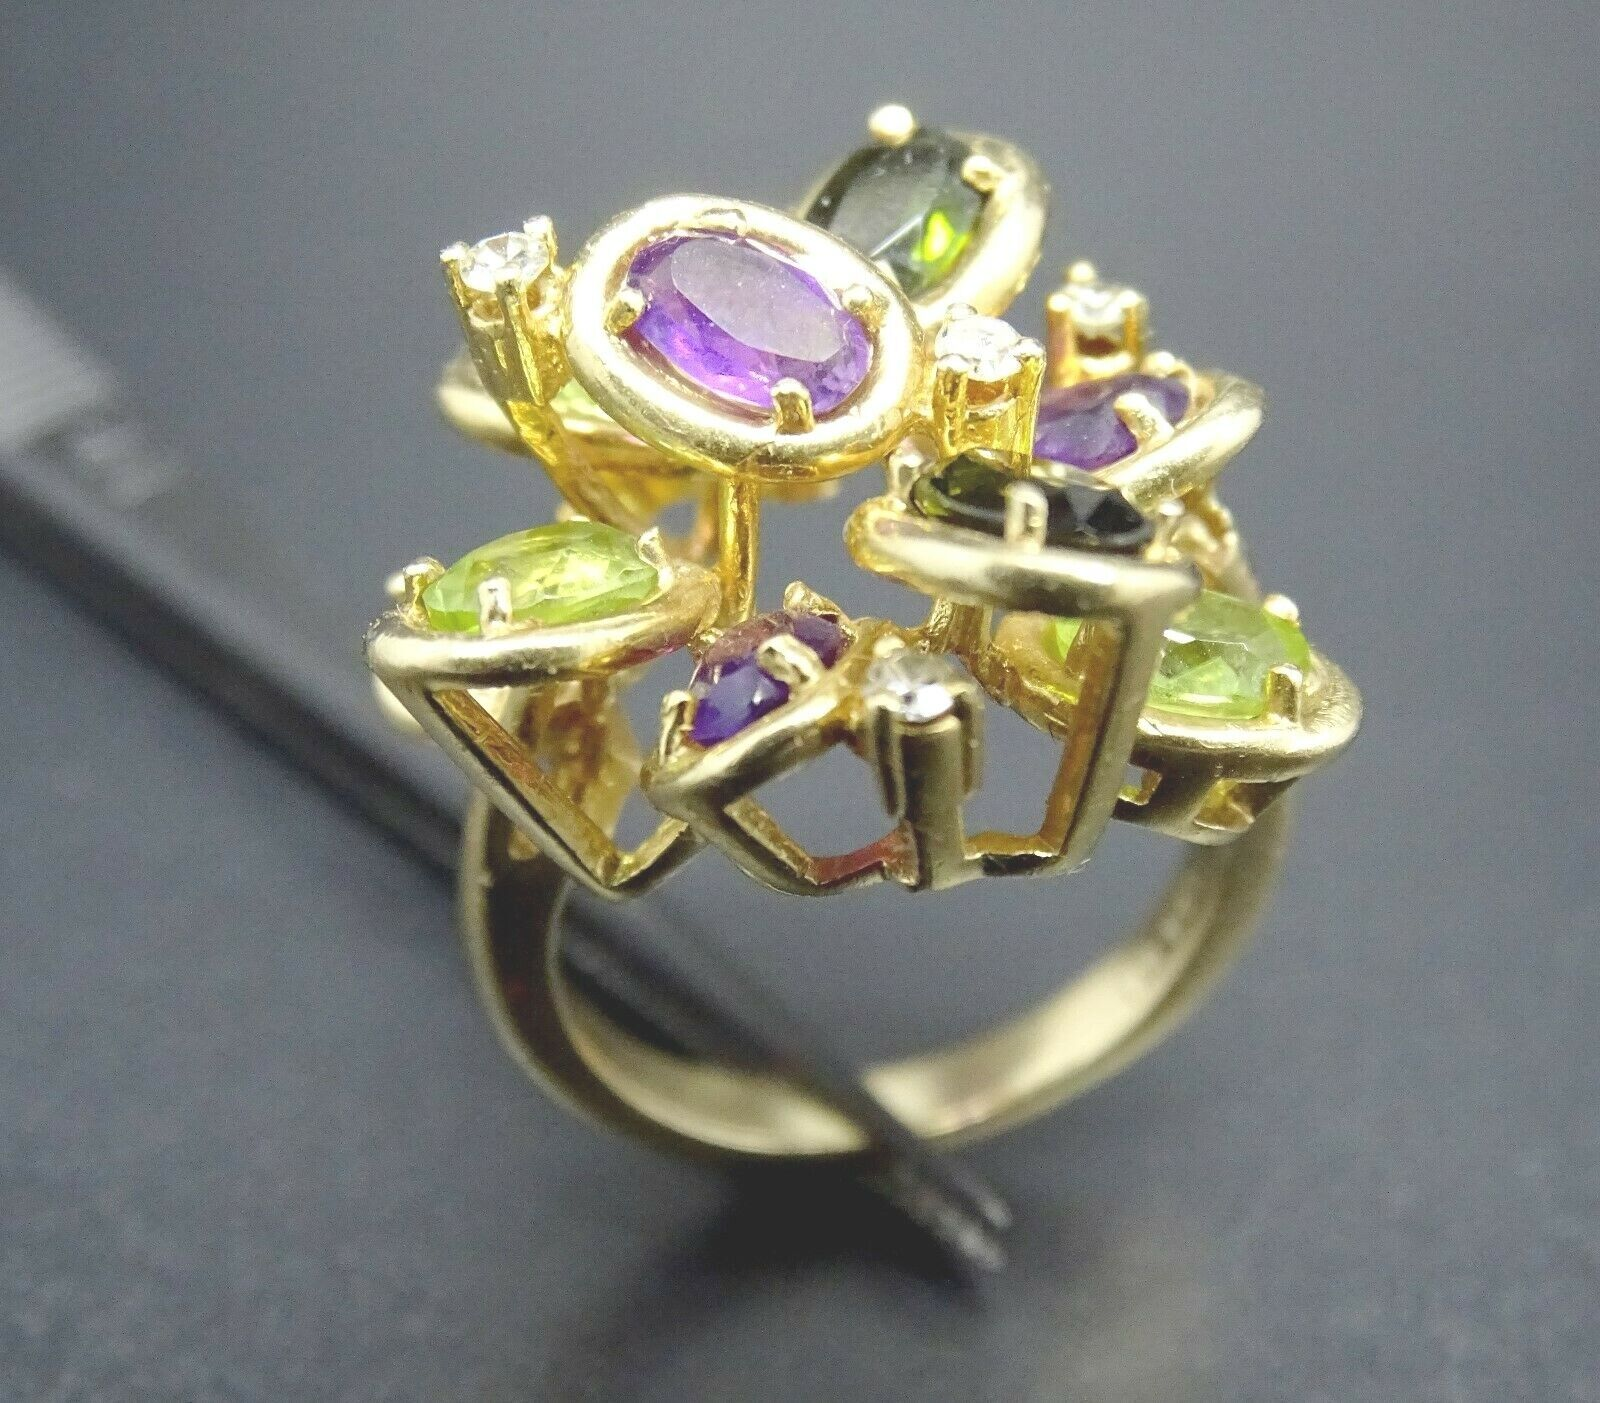 14k Solid gold Amethyst Peridot Diamond Large Ring heavy